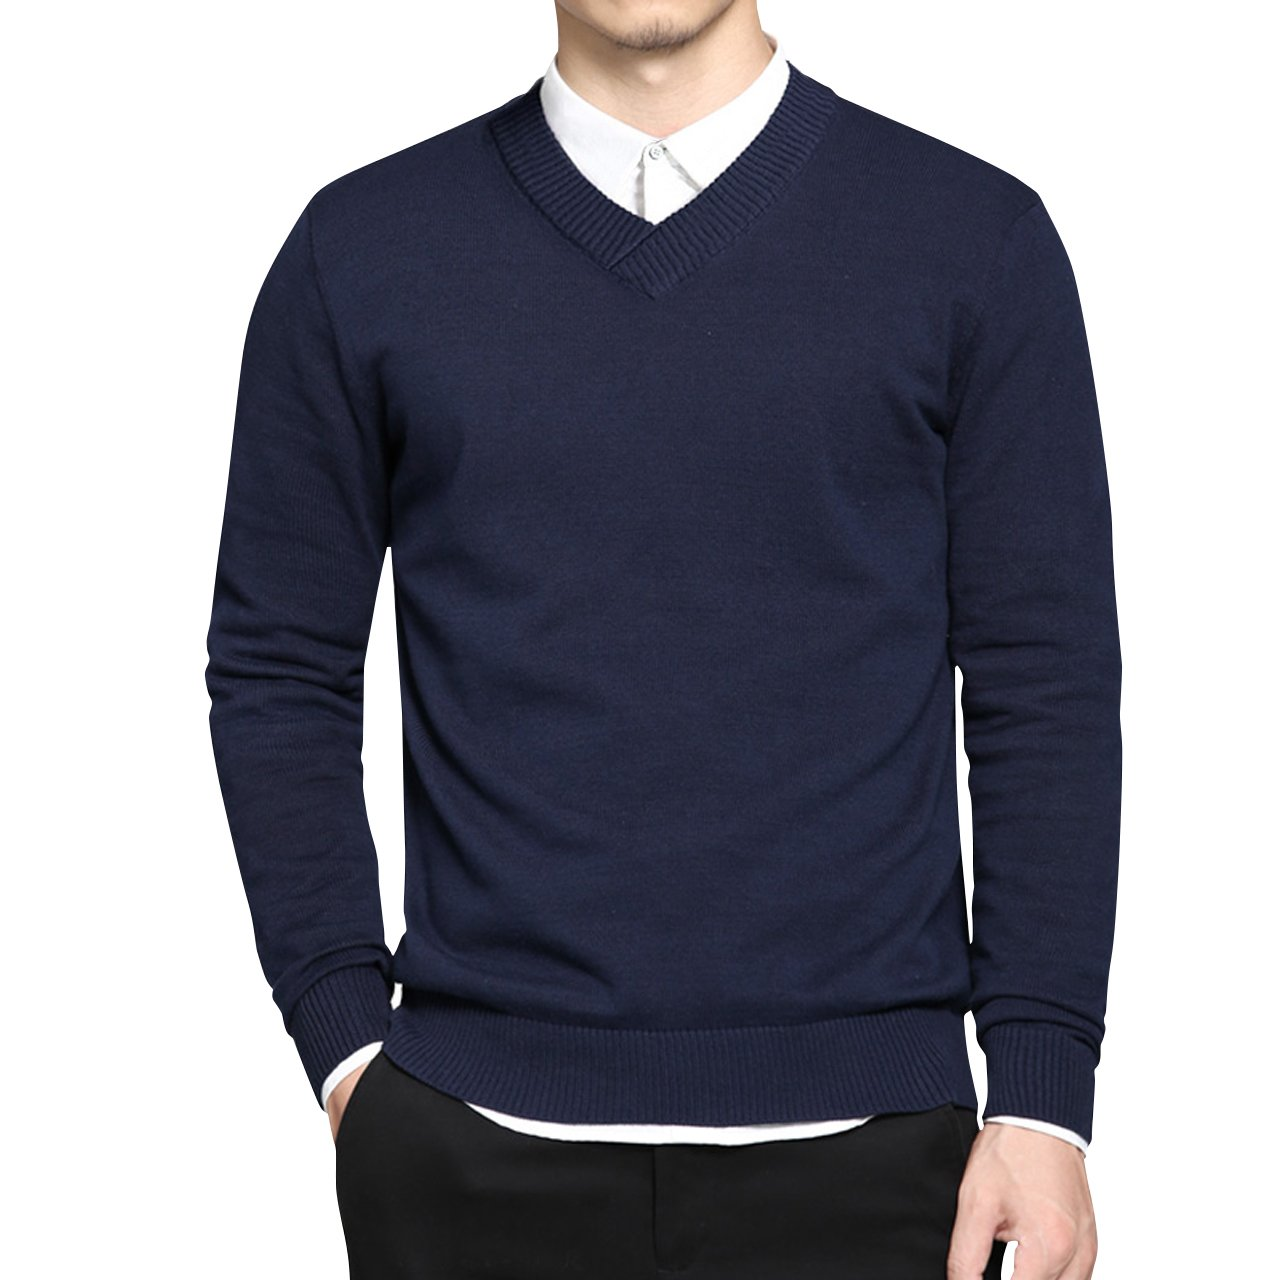 LTIFONE Mens Slim Comfortably Knitted Long Sleeve V-Neck Sweaters (Small, Blue)